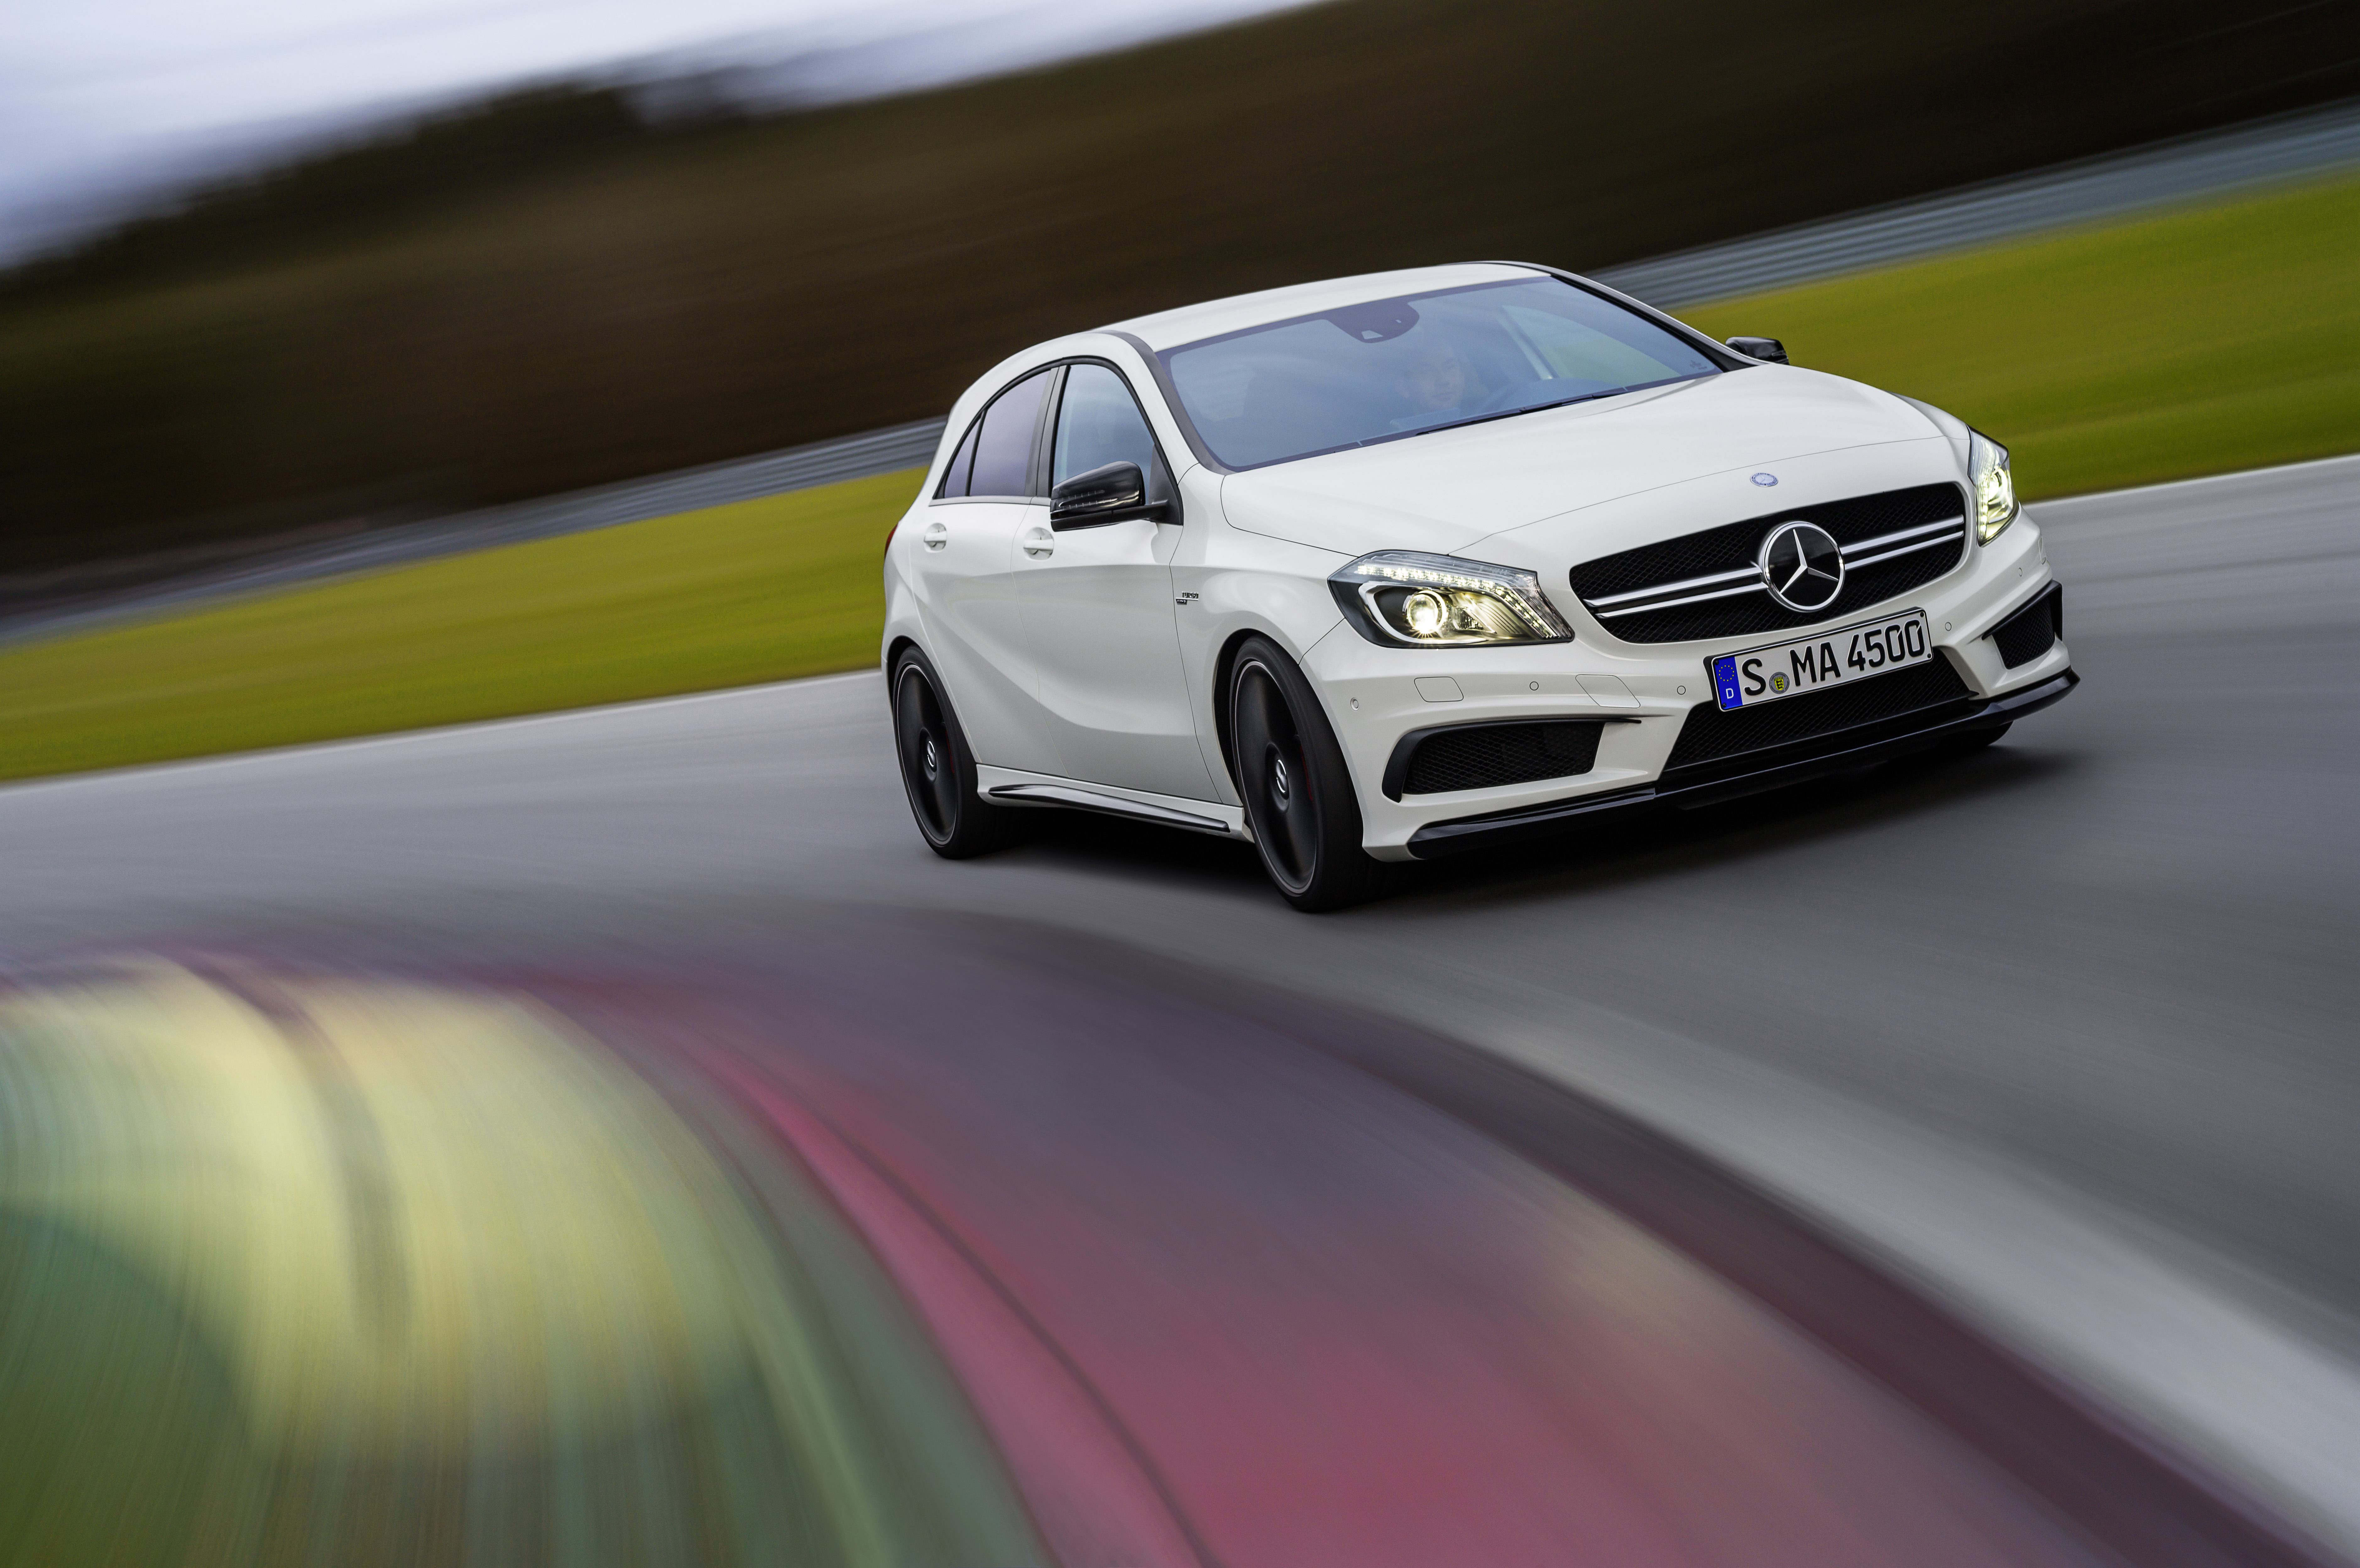 2014 mercedes benz a45 amg unveiled ahead of geneva motor show